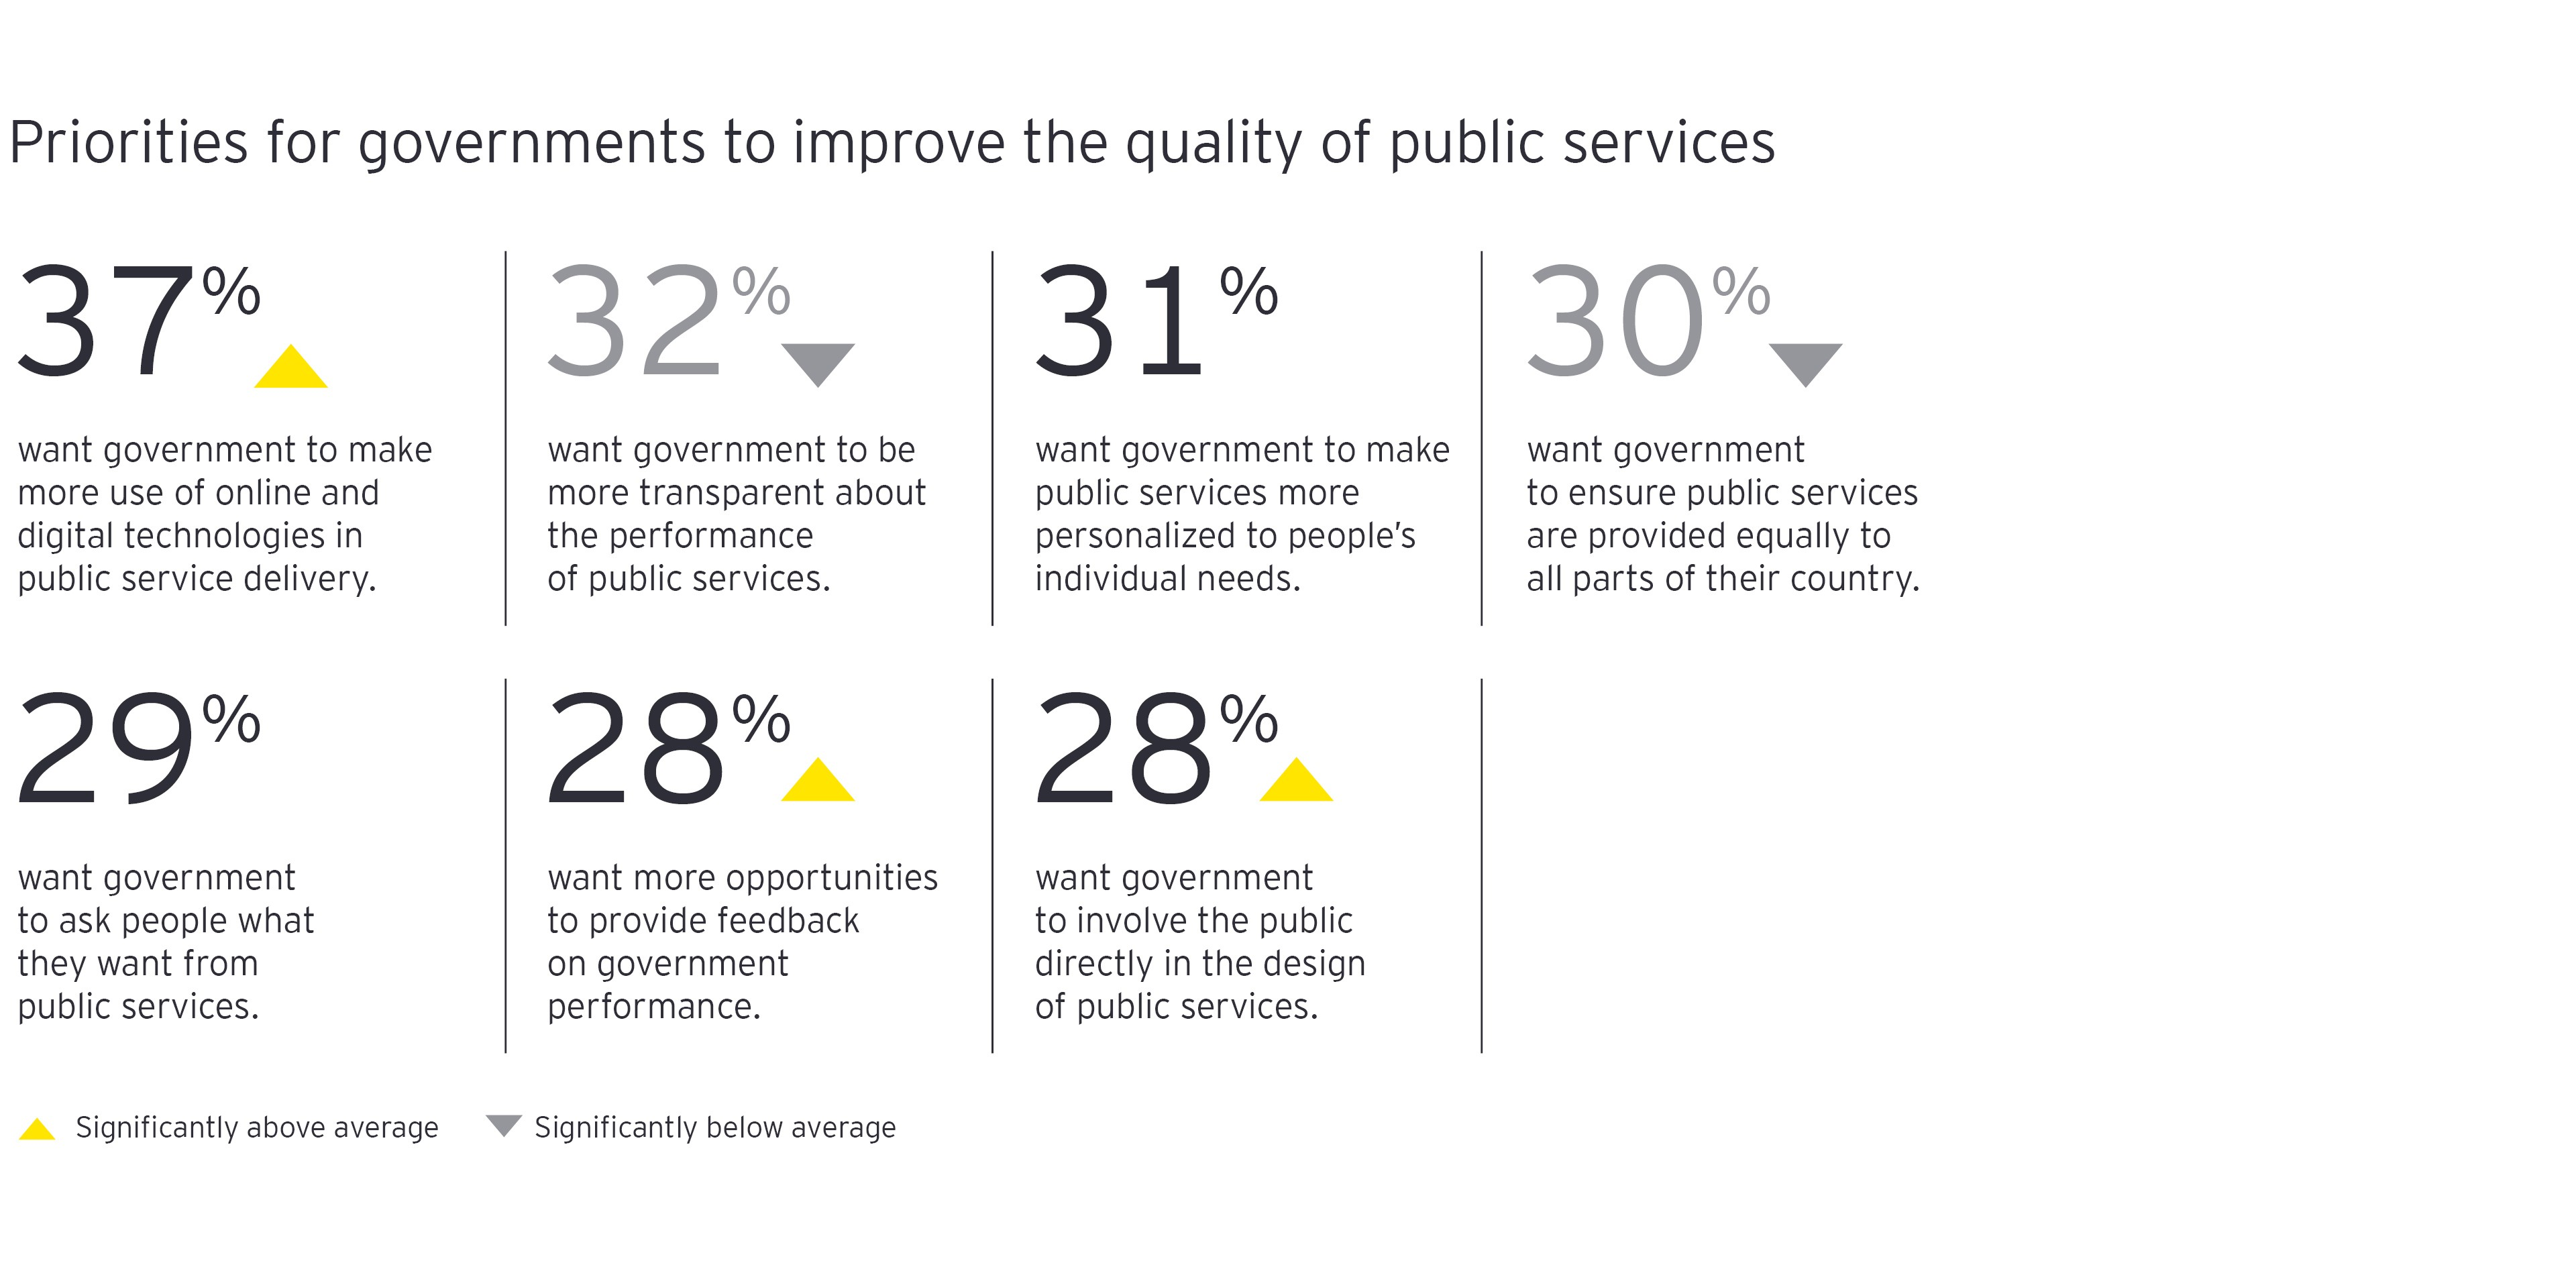 Priorities for government to improve the quality of public service chart